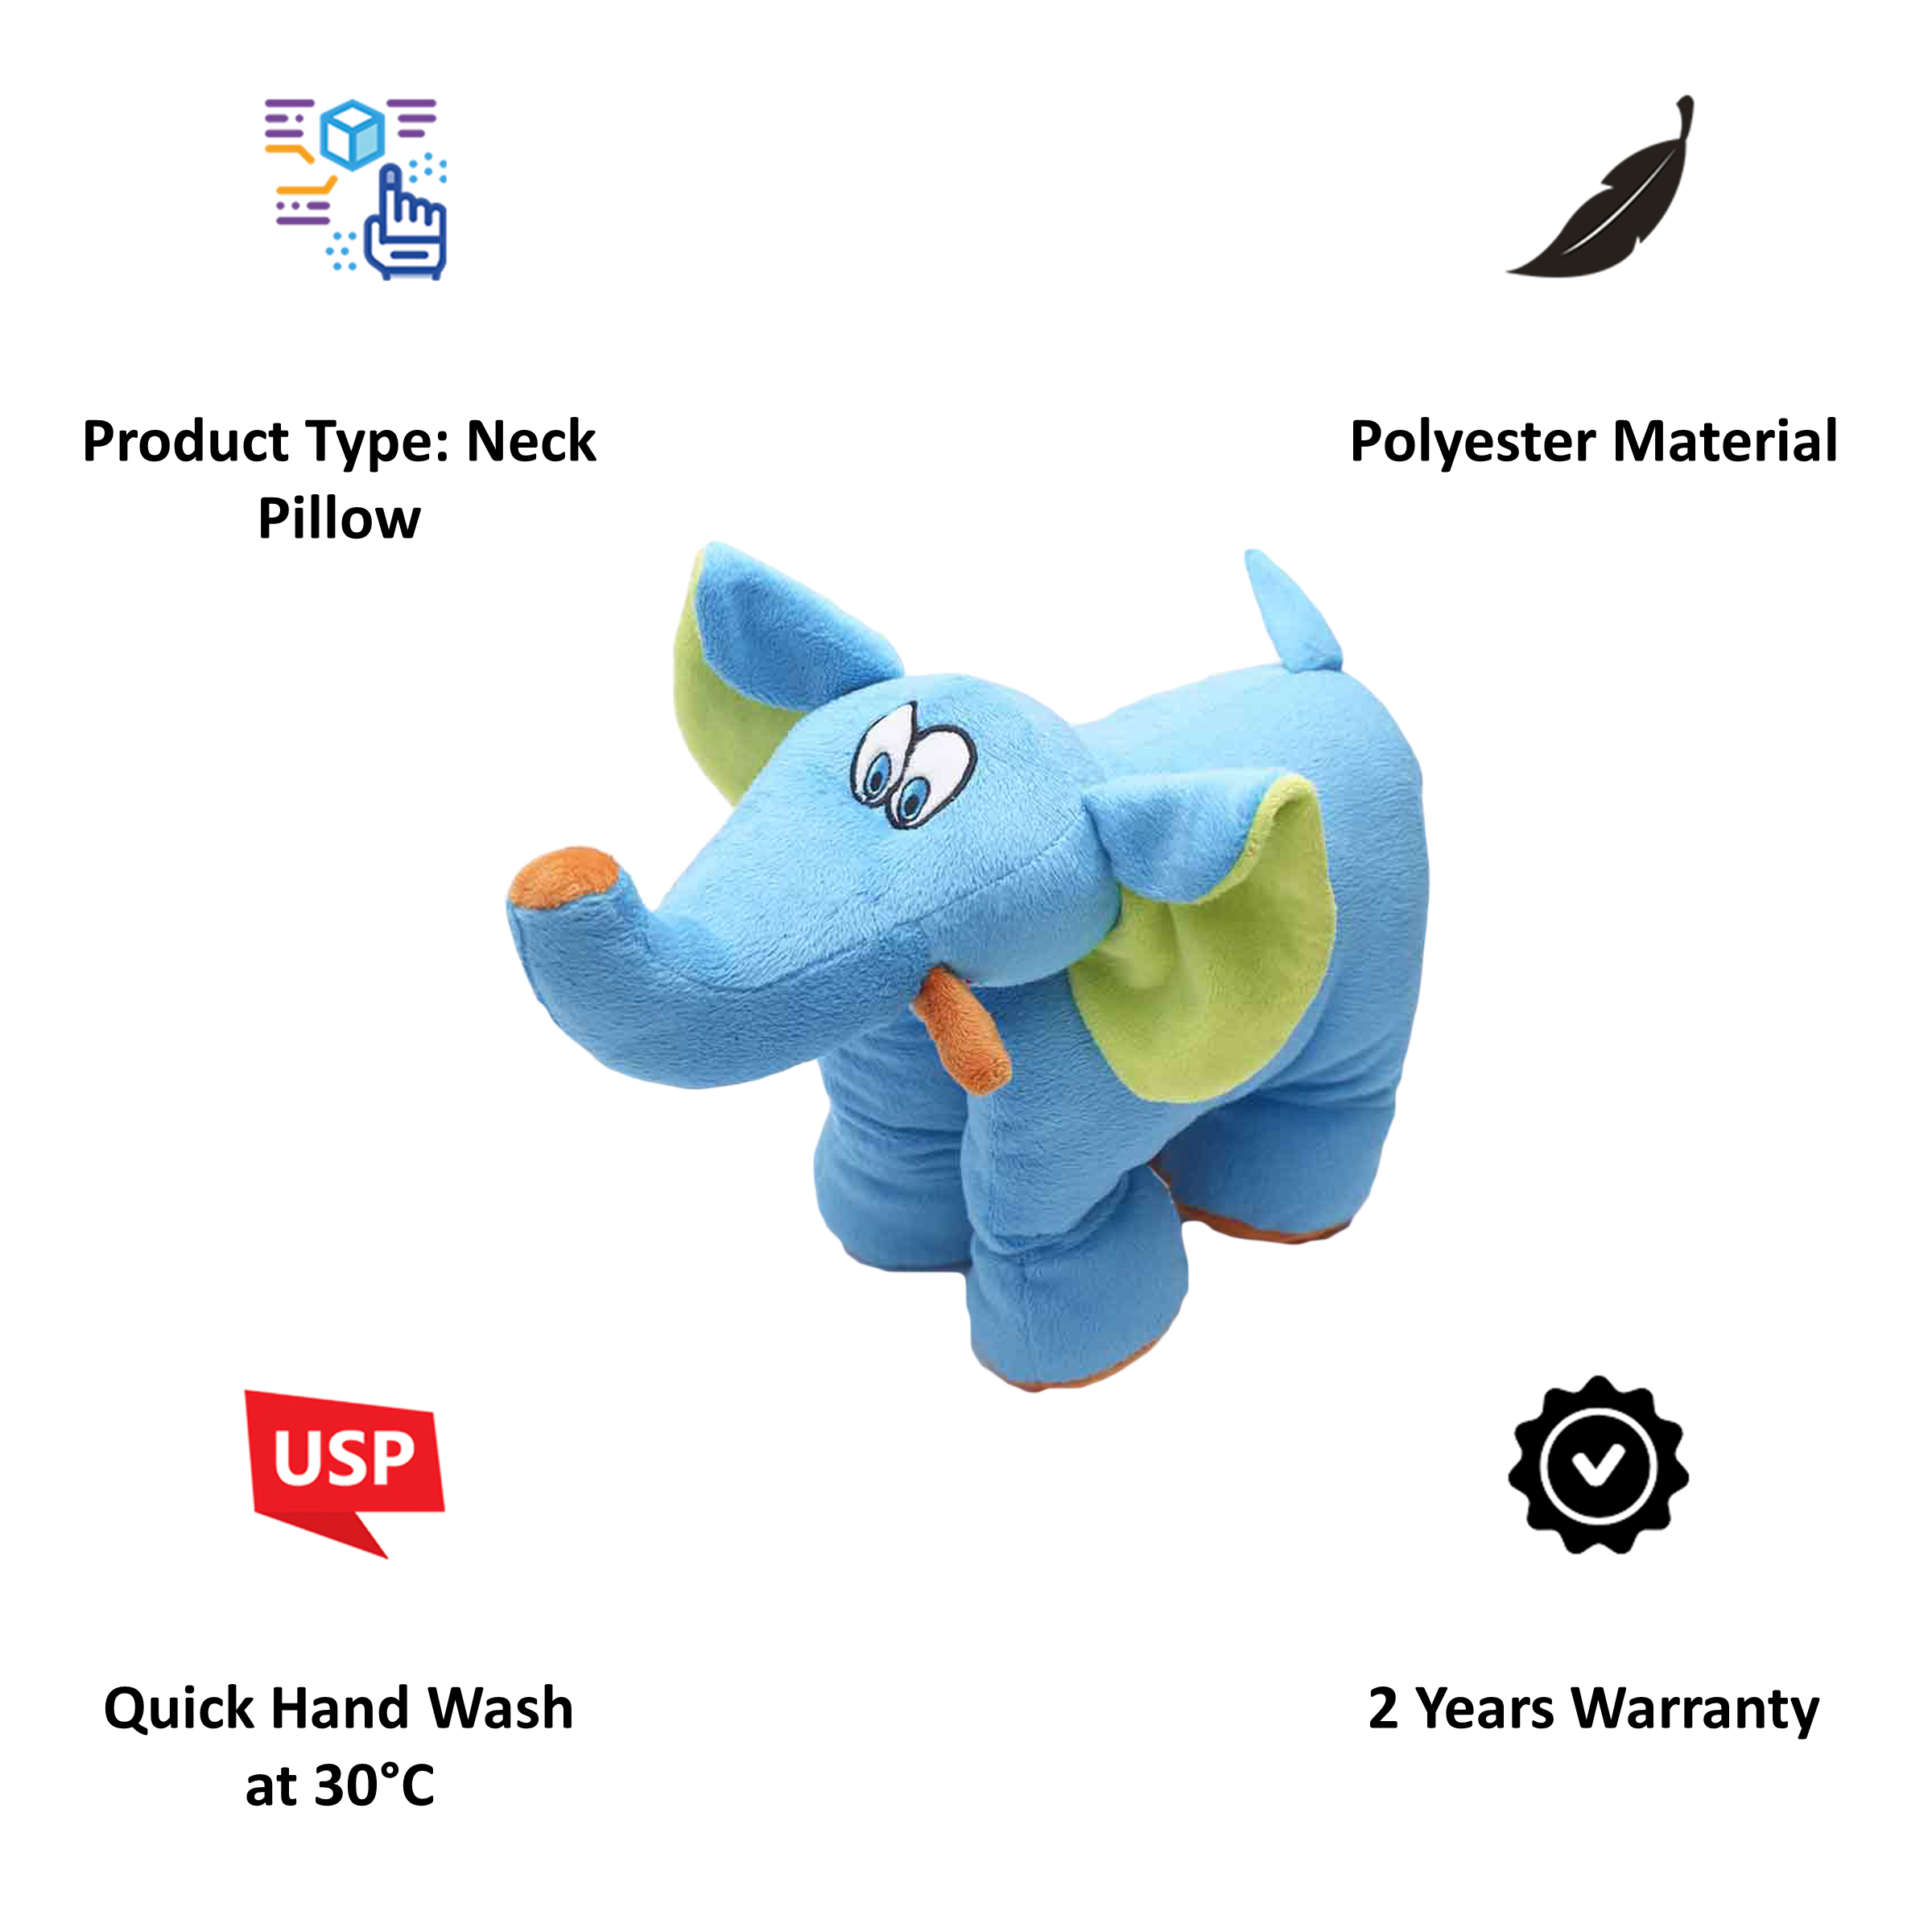 Travel Blue Trunky The Elephant Polyester Neck Pillow (Soft and Comfortable, Multicolor)_4